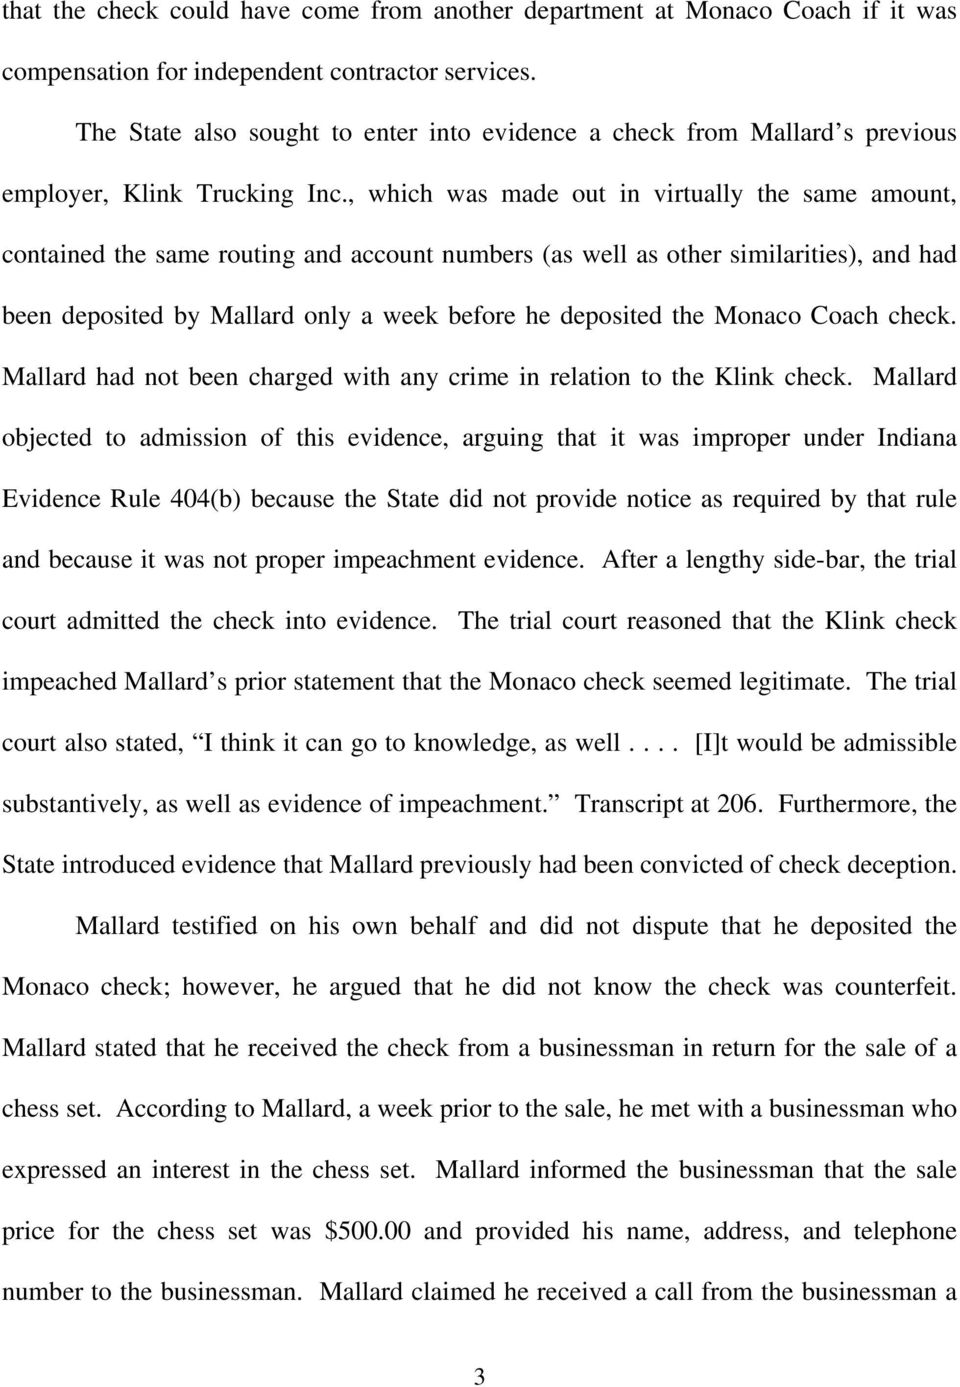 , which was made out in virtually the same amount, contained the same routing and account numbers (as well as other similarities), and had been deposited by Mallard only a week before he deposited